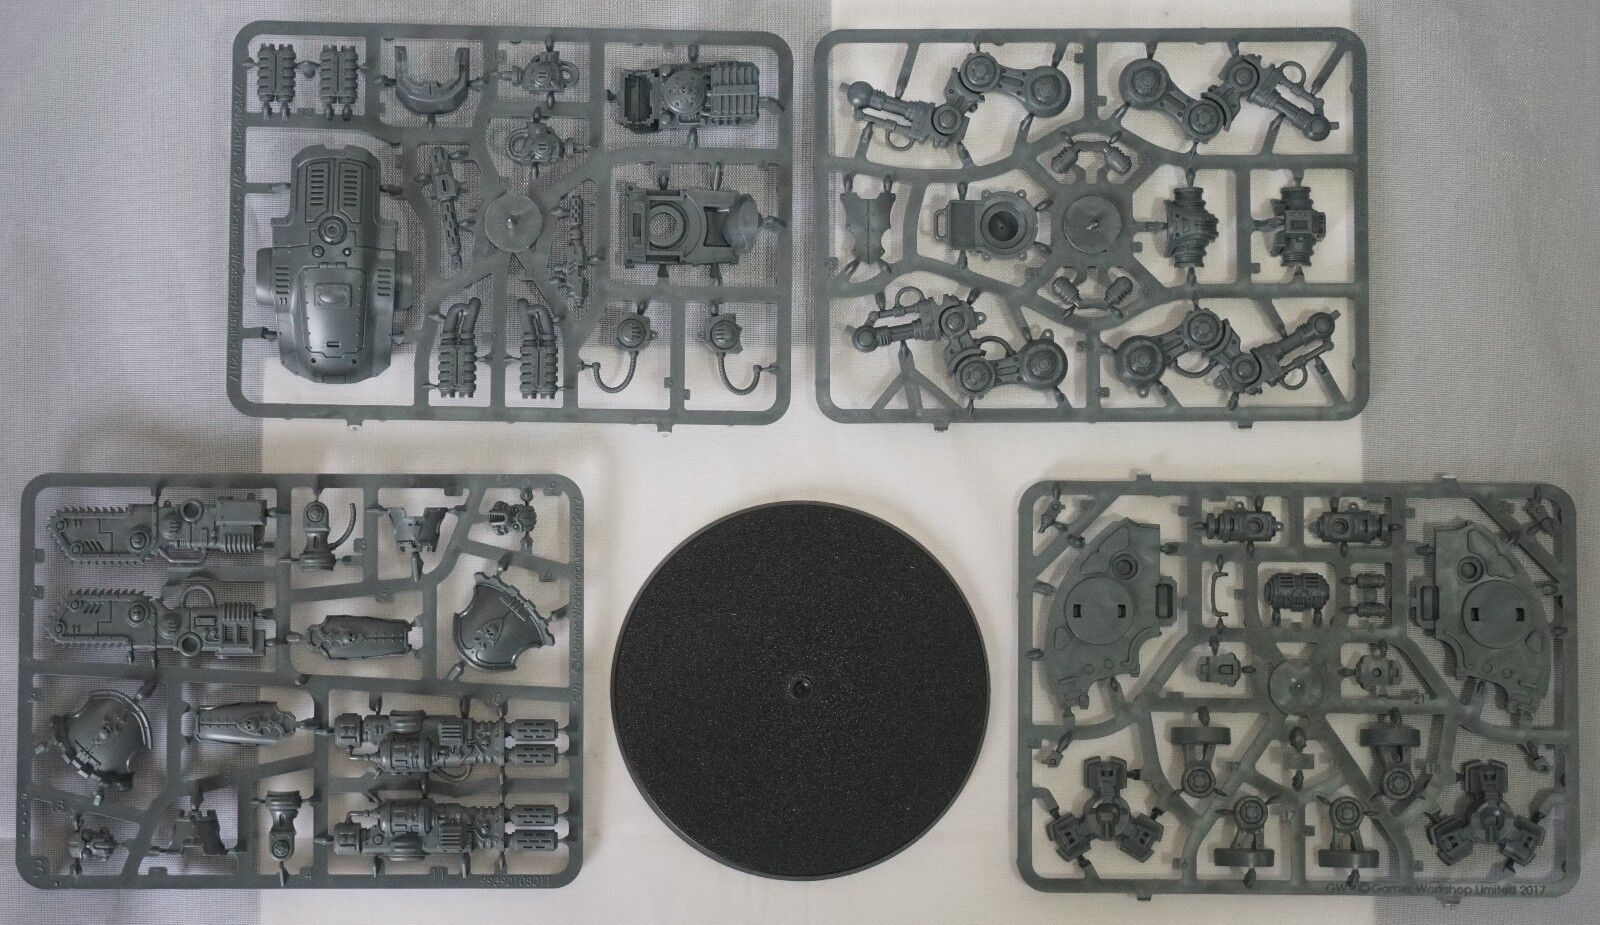 Warhammer 40k Imperial Knight Armiger Warglaive (1 Model) Warglaive